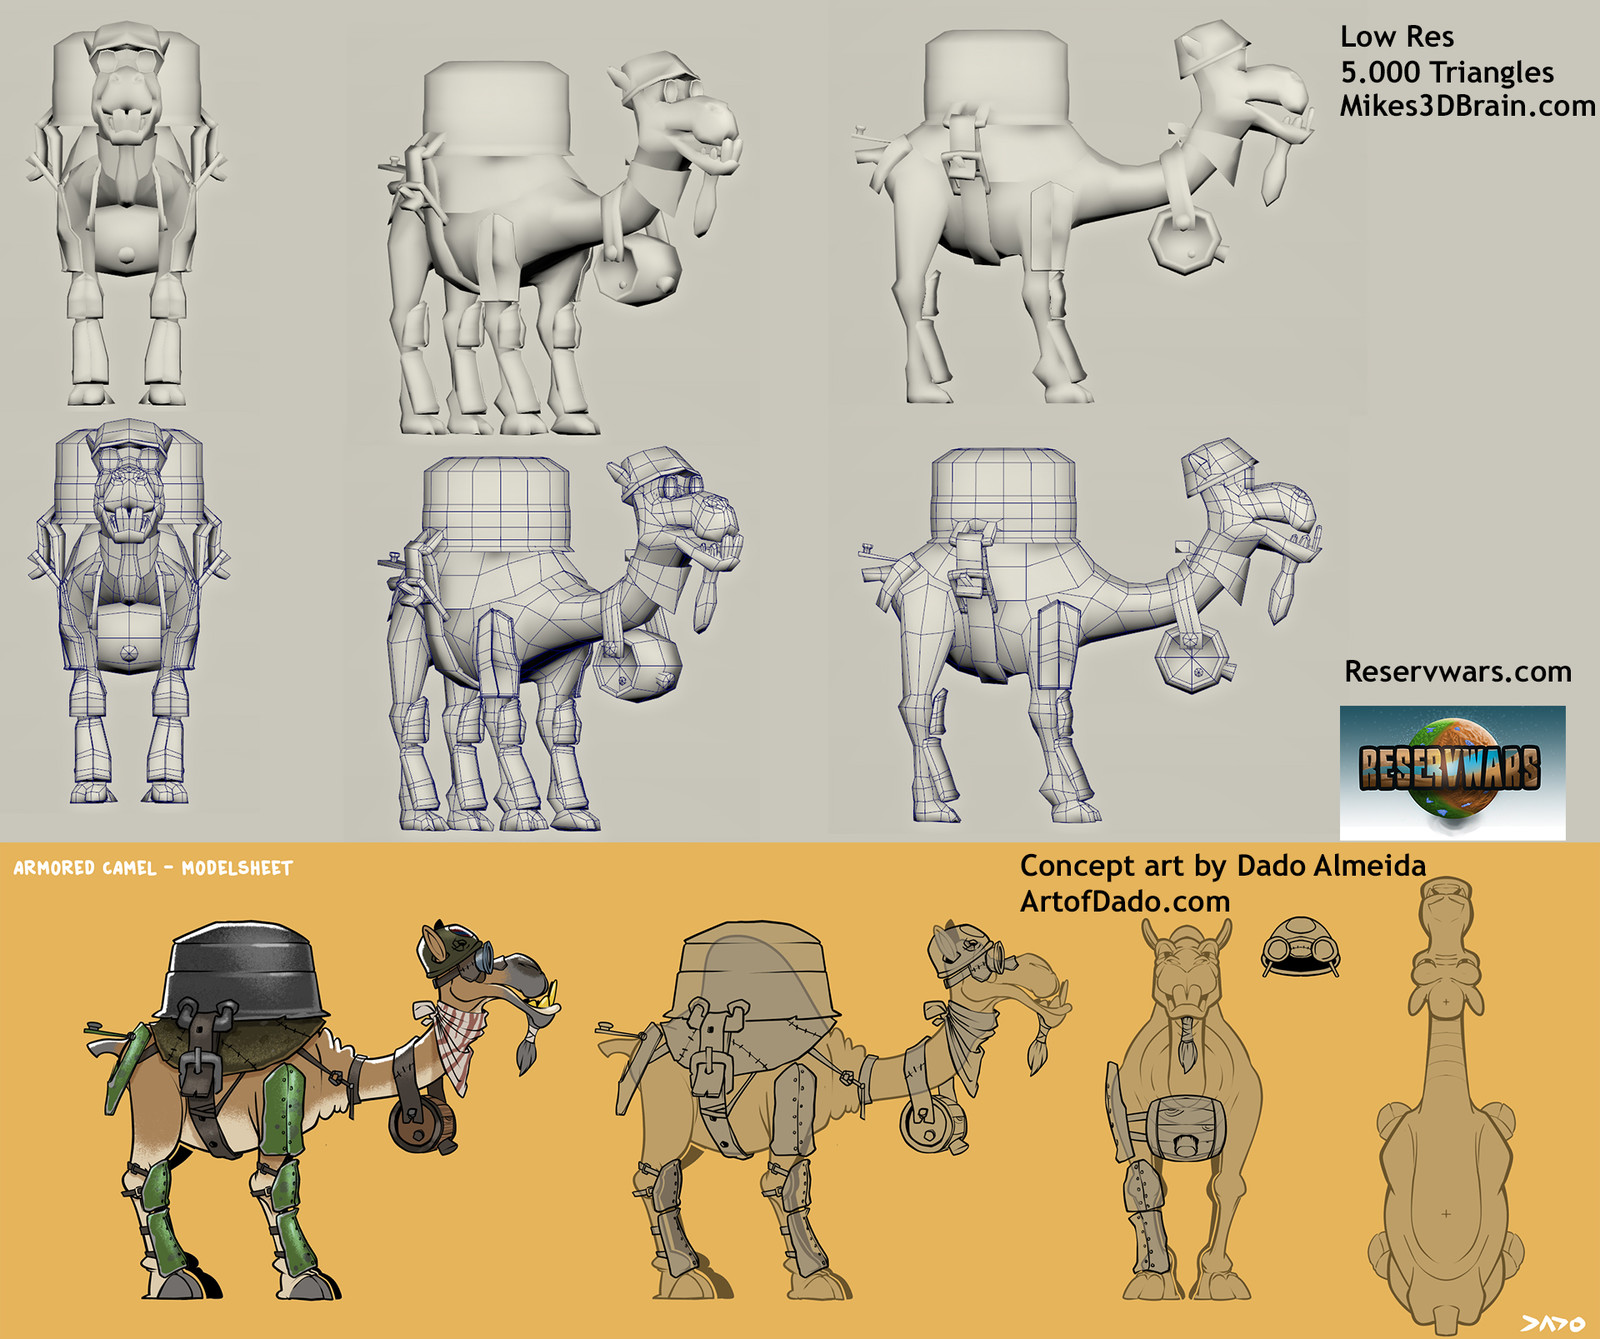 Modeling Sheet with the original concept art.